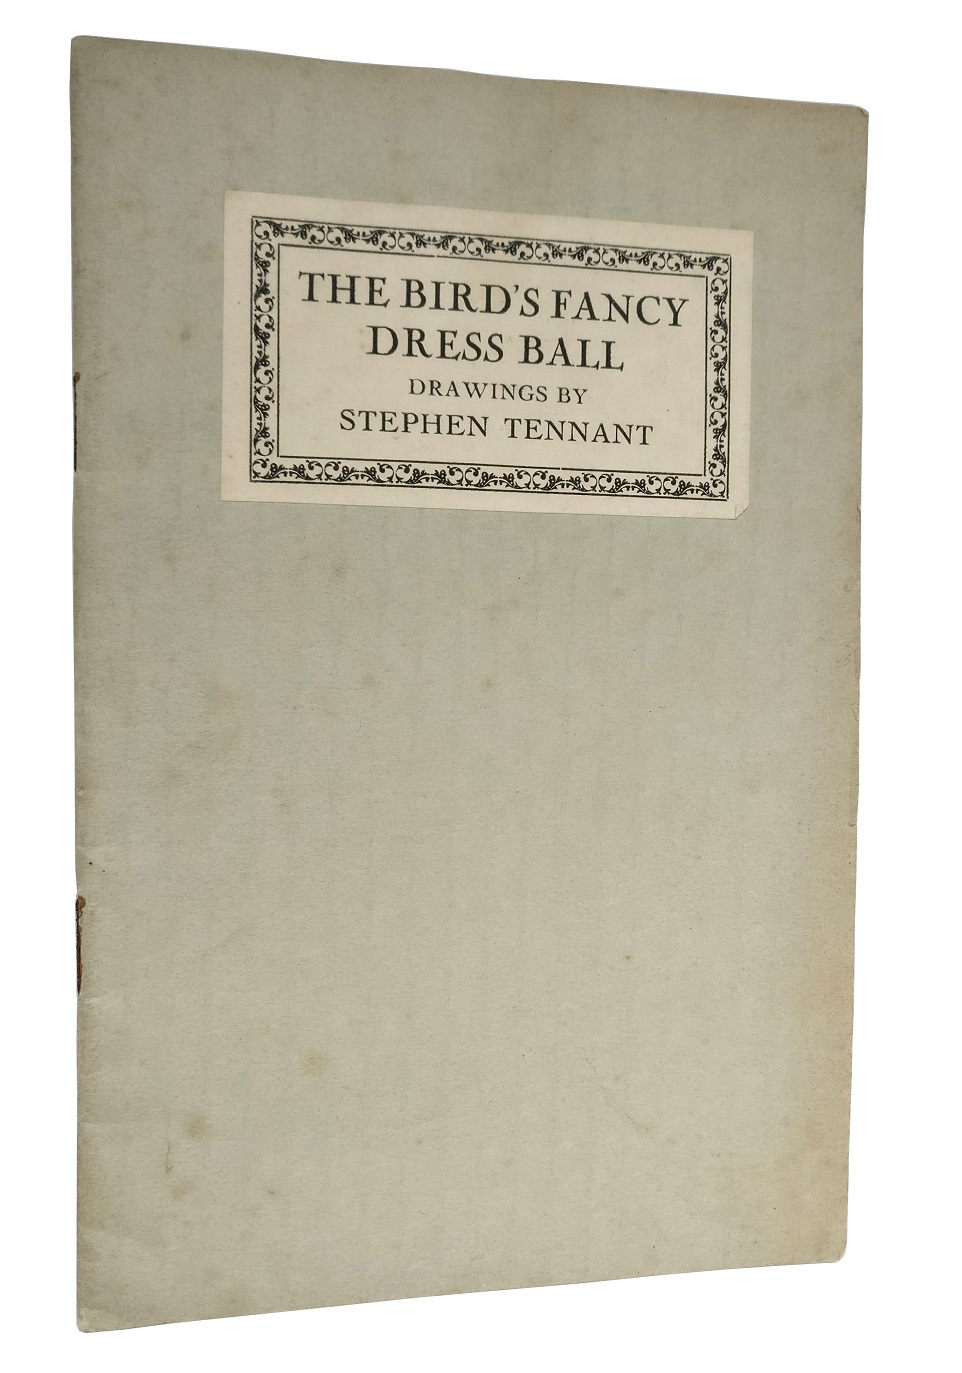 The Bird's Fancy Dress Ball